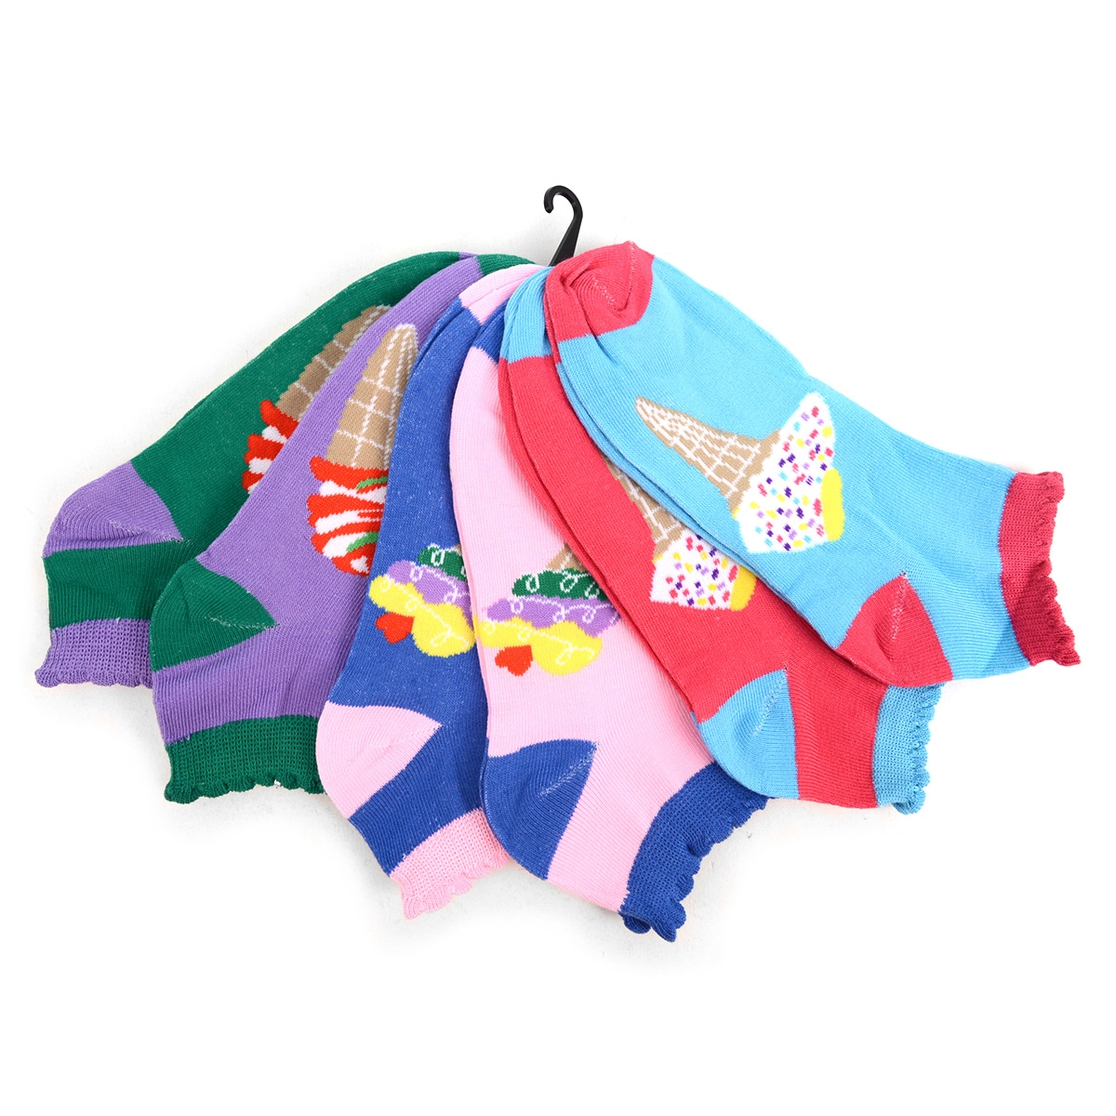 6 Pairs Women Ice Cream Low Cut Sock - orangeshine.com